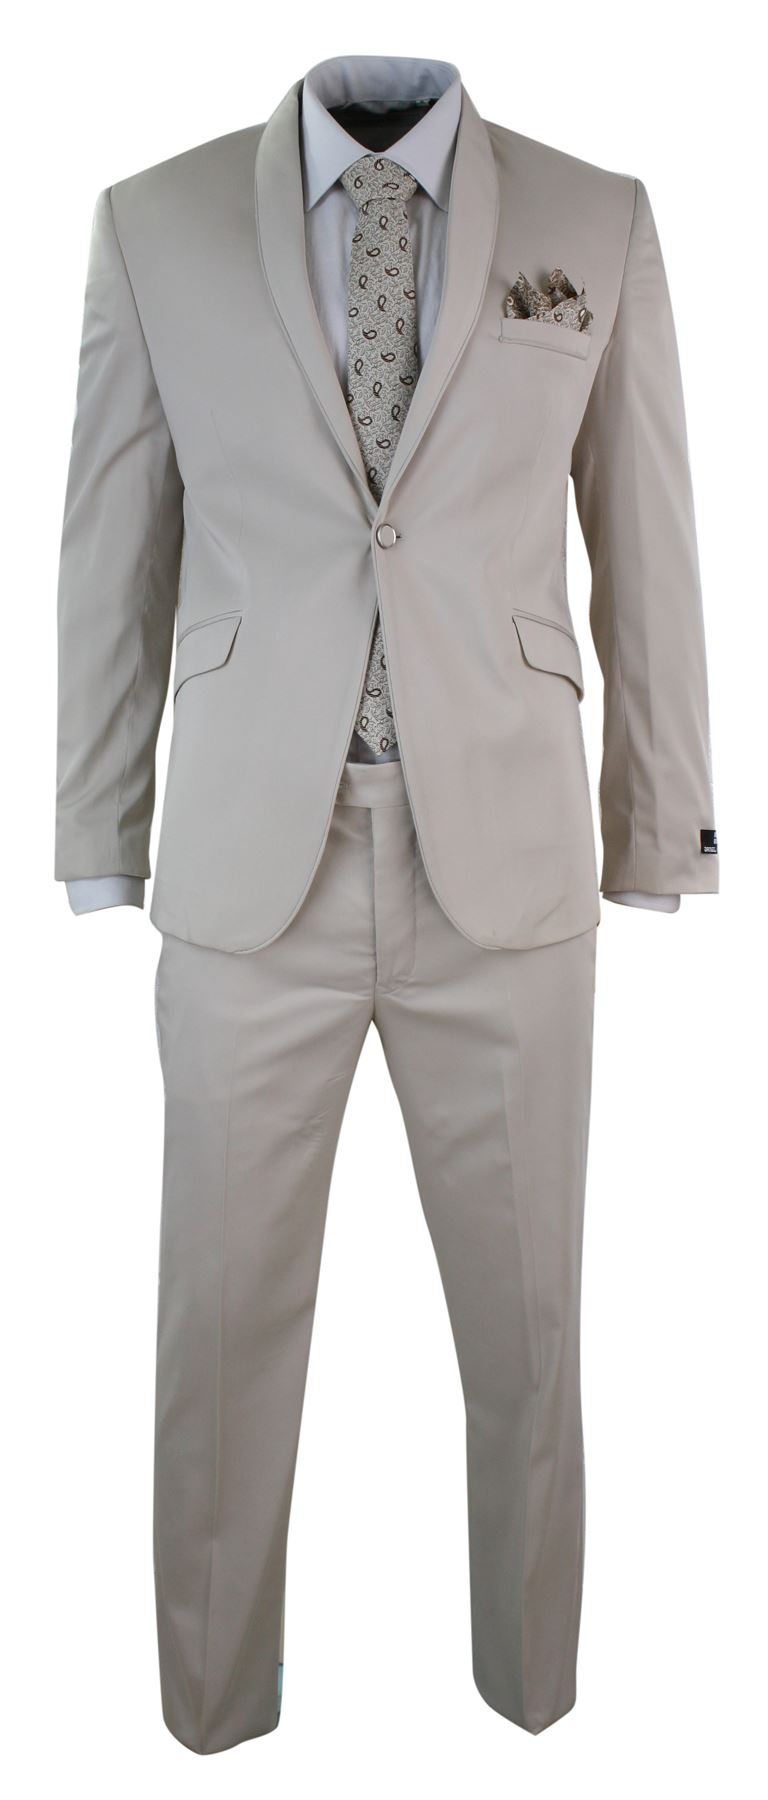 Available in classic fit/regular fit or can be tailored to be slim fit. If you have any questions about sizing, feel free to call us at () and Our signature modern three piece, two-button, flat-front suit in TR combines the best features of classic and slim fit designs to give you comfort and utmost style.